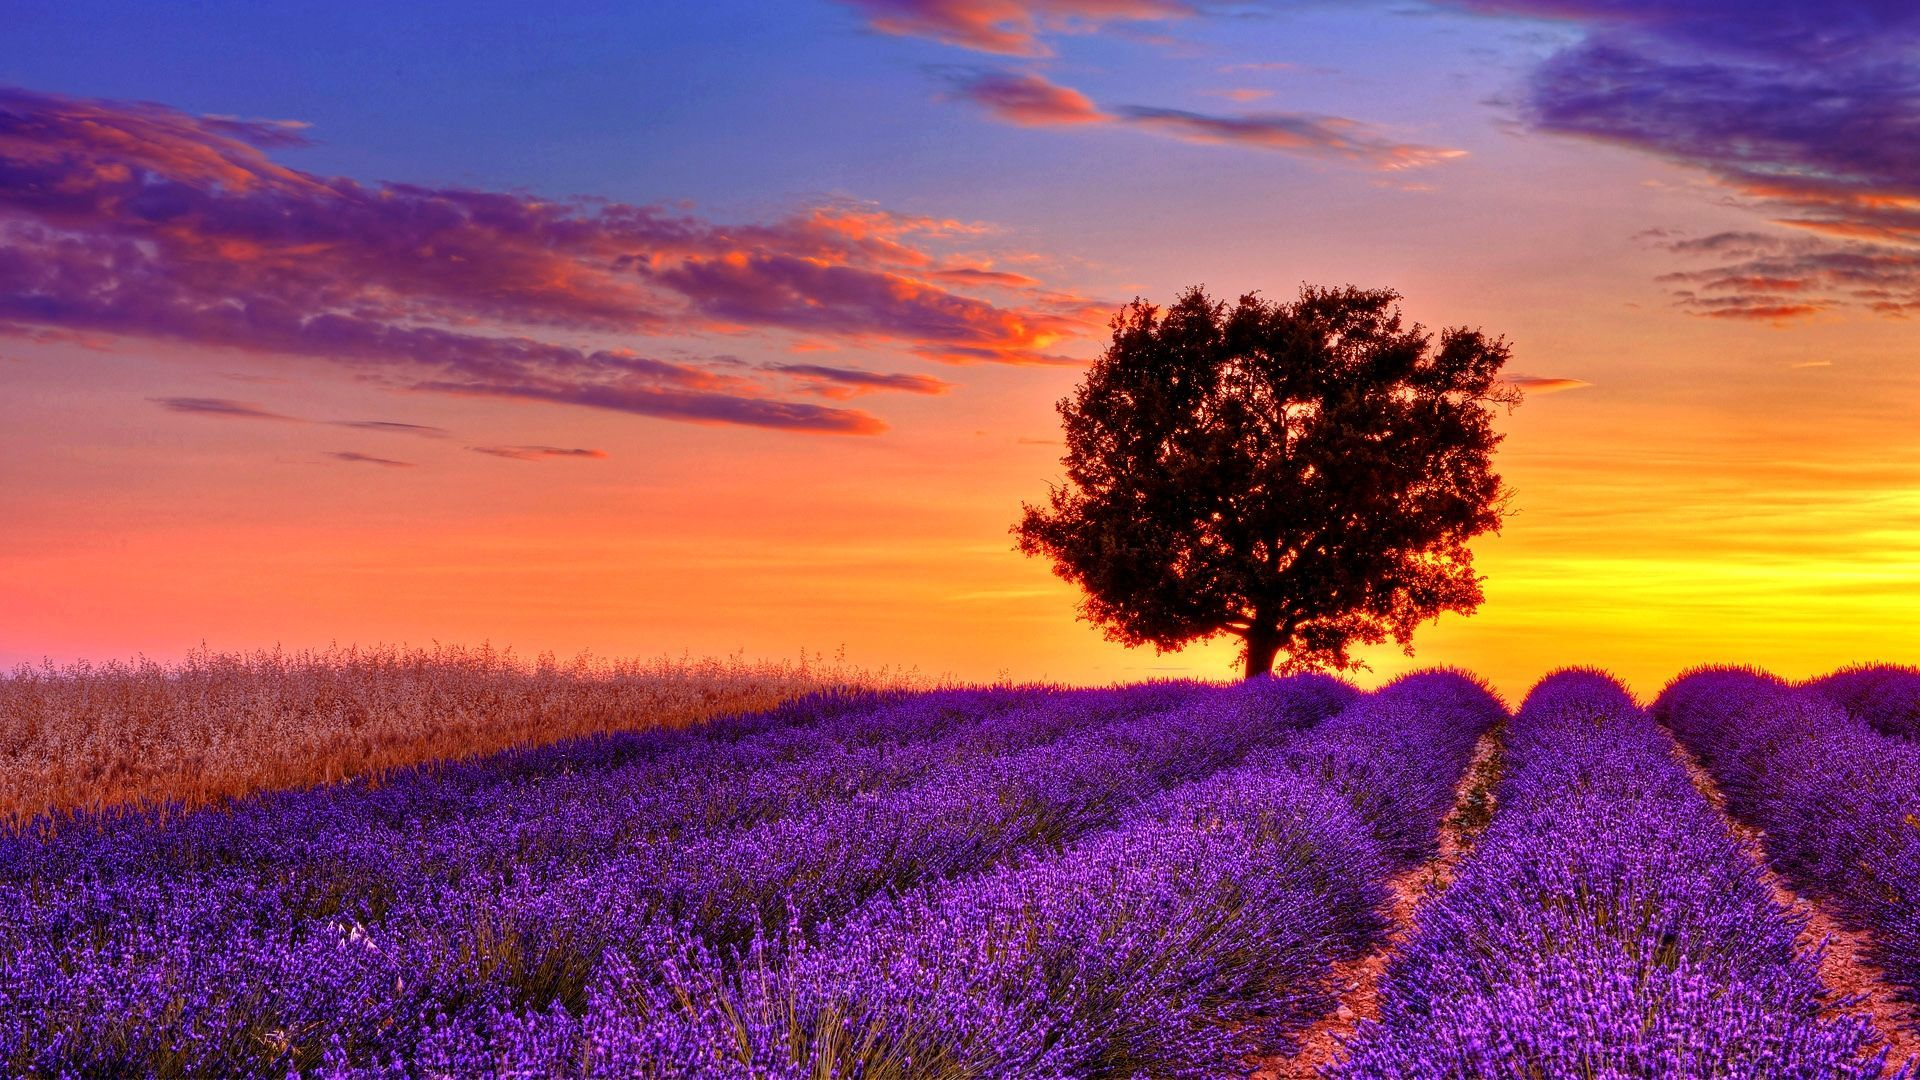 lavender flower field sunset high resolution wallpaper for